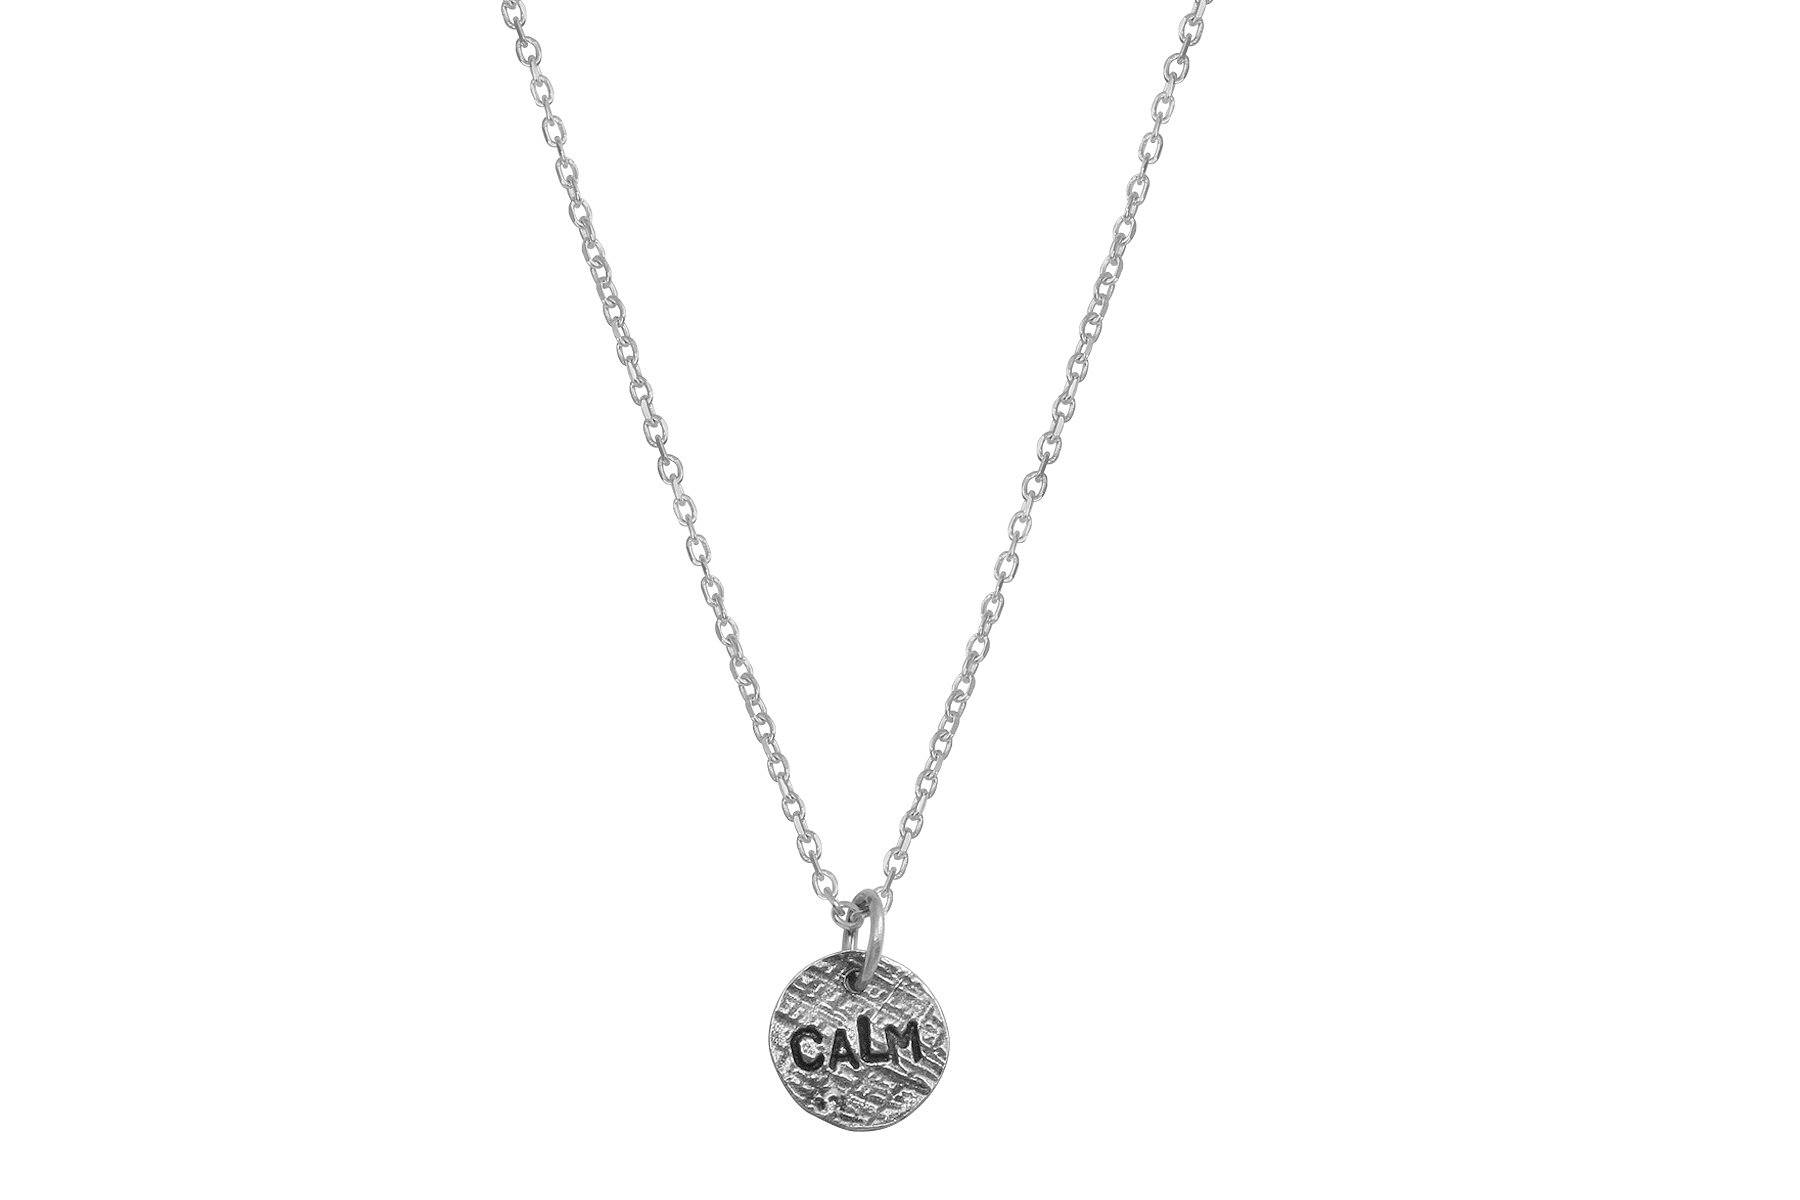 Say Something silver charm necklace-choose your word